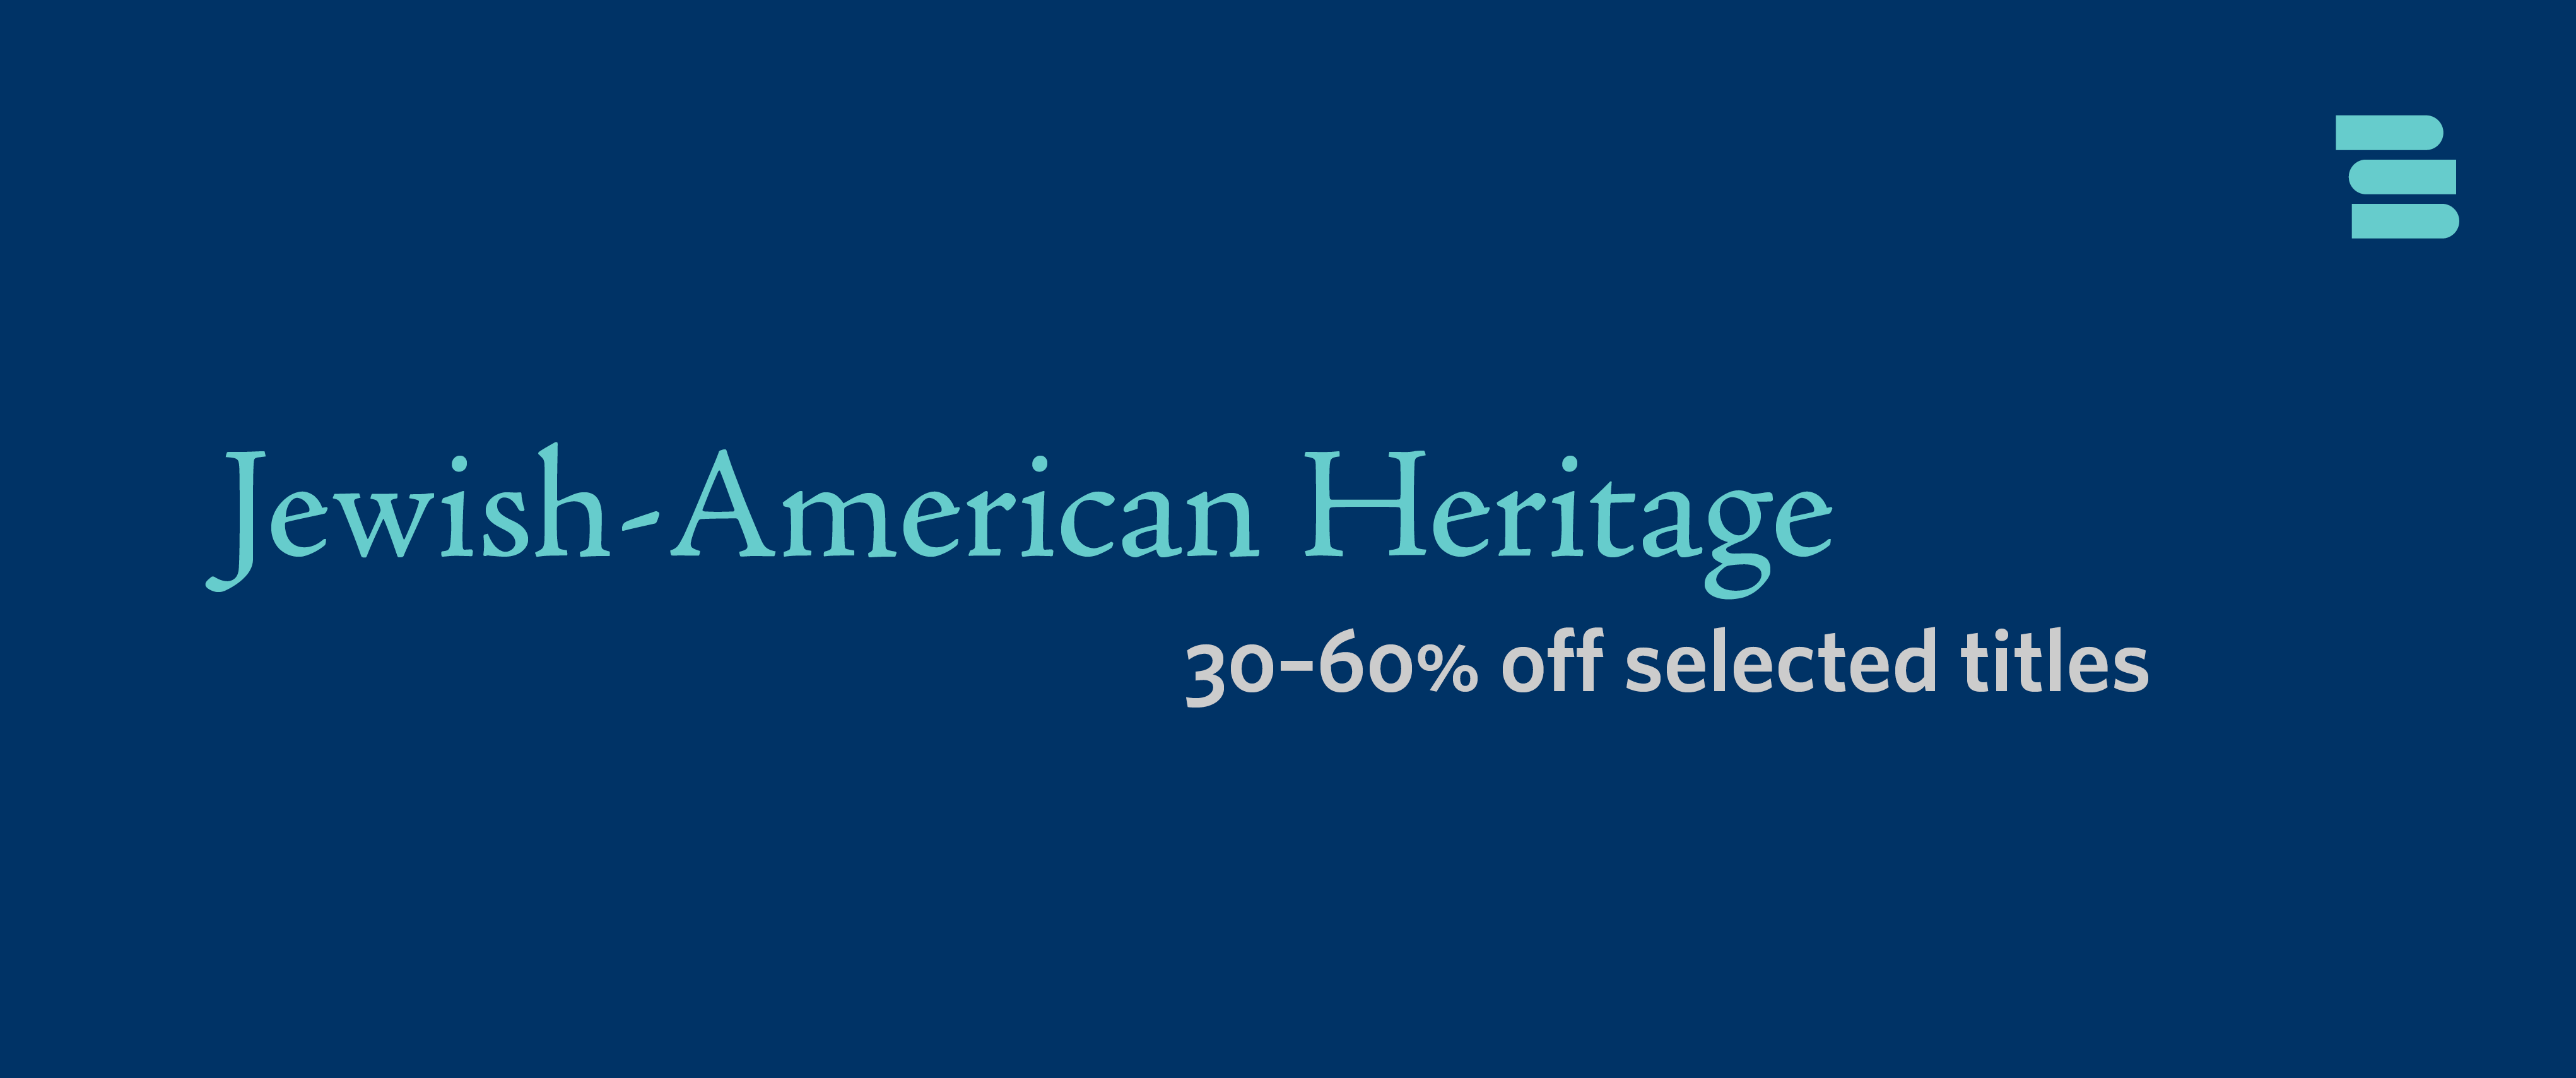 Jewish-American Heritage titles 30–60% off!